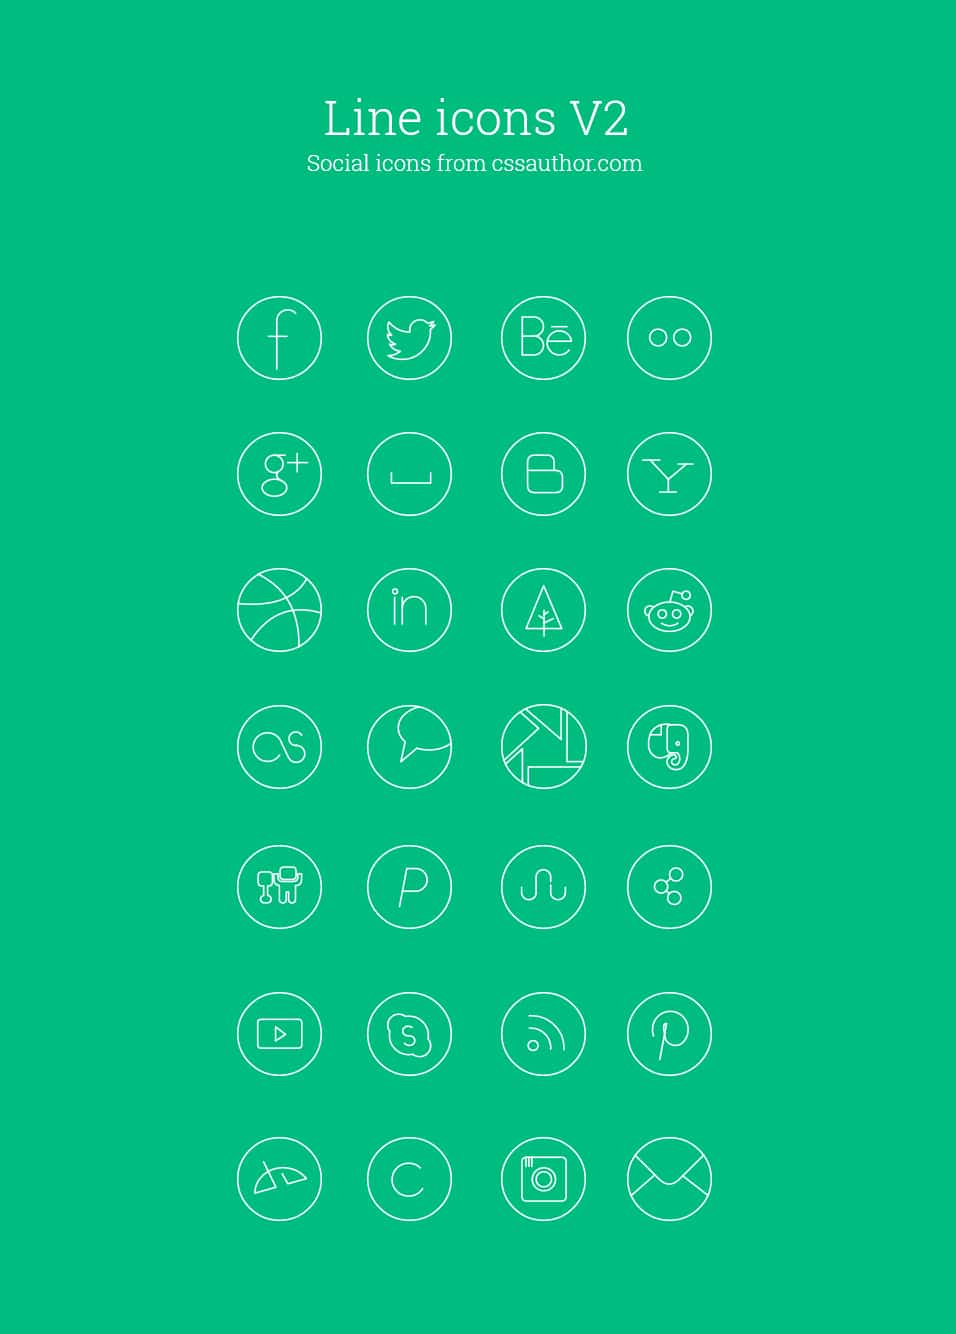 Free Social Media Line Icon Set - cssauthor.com